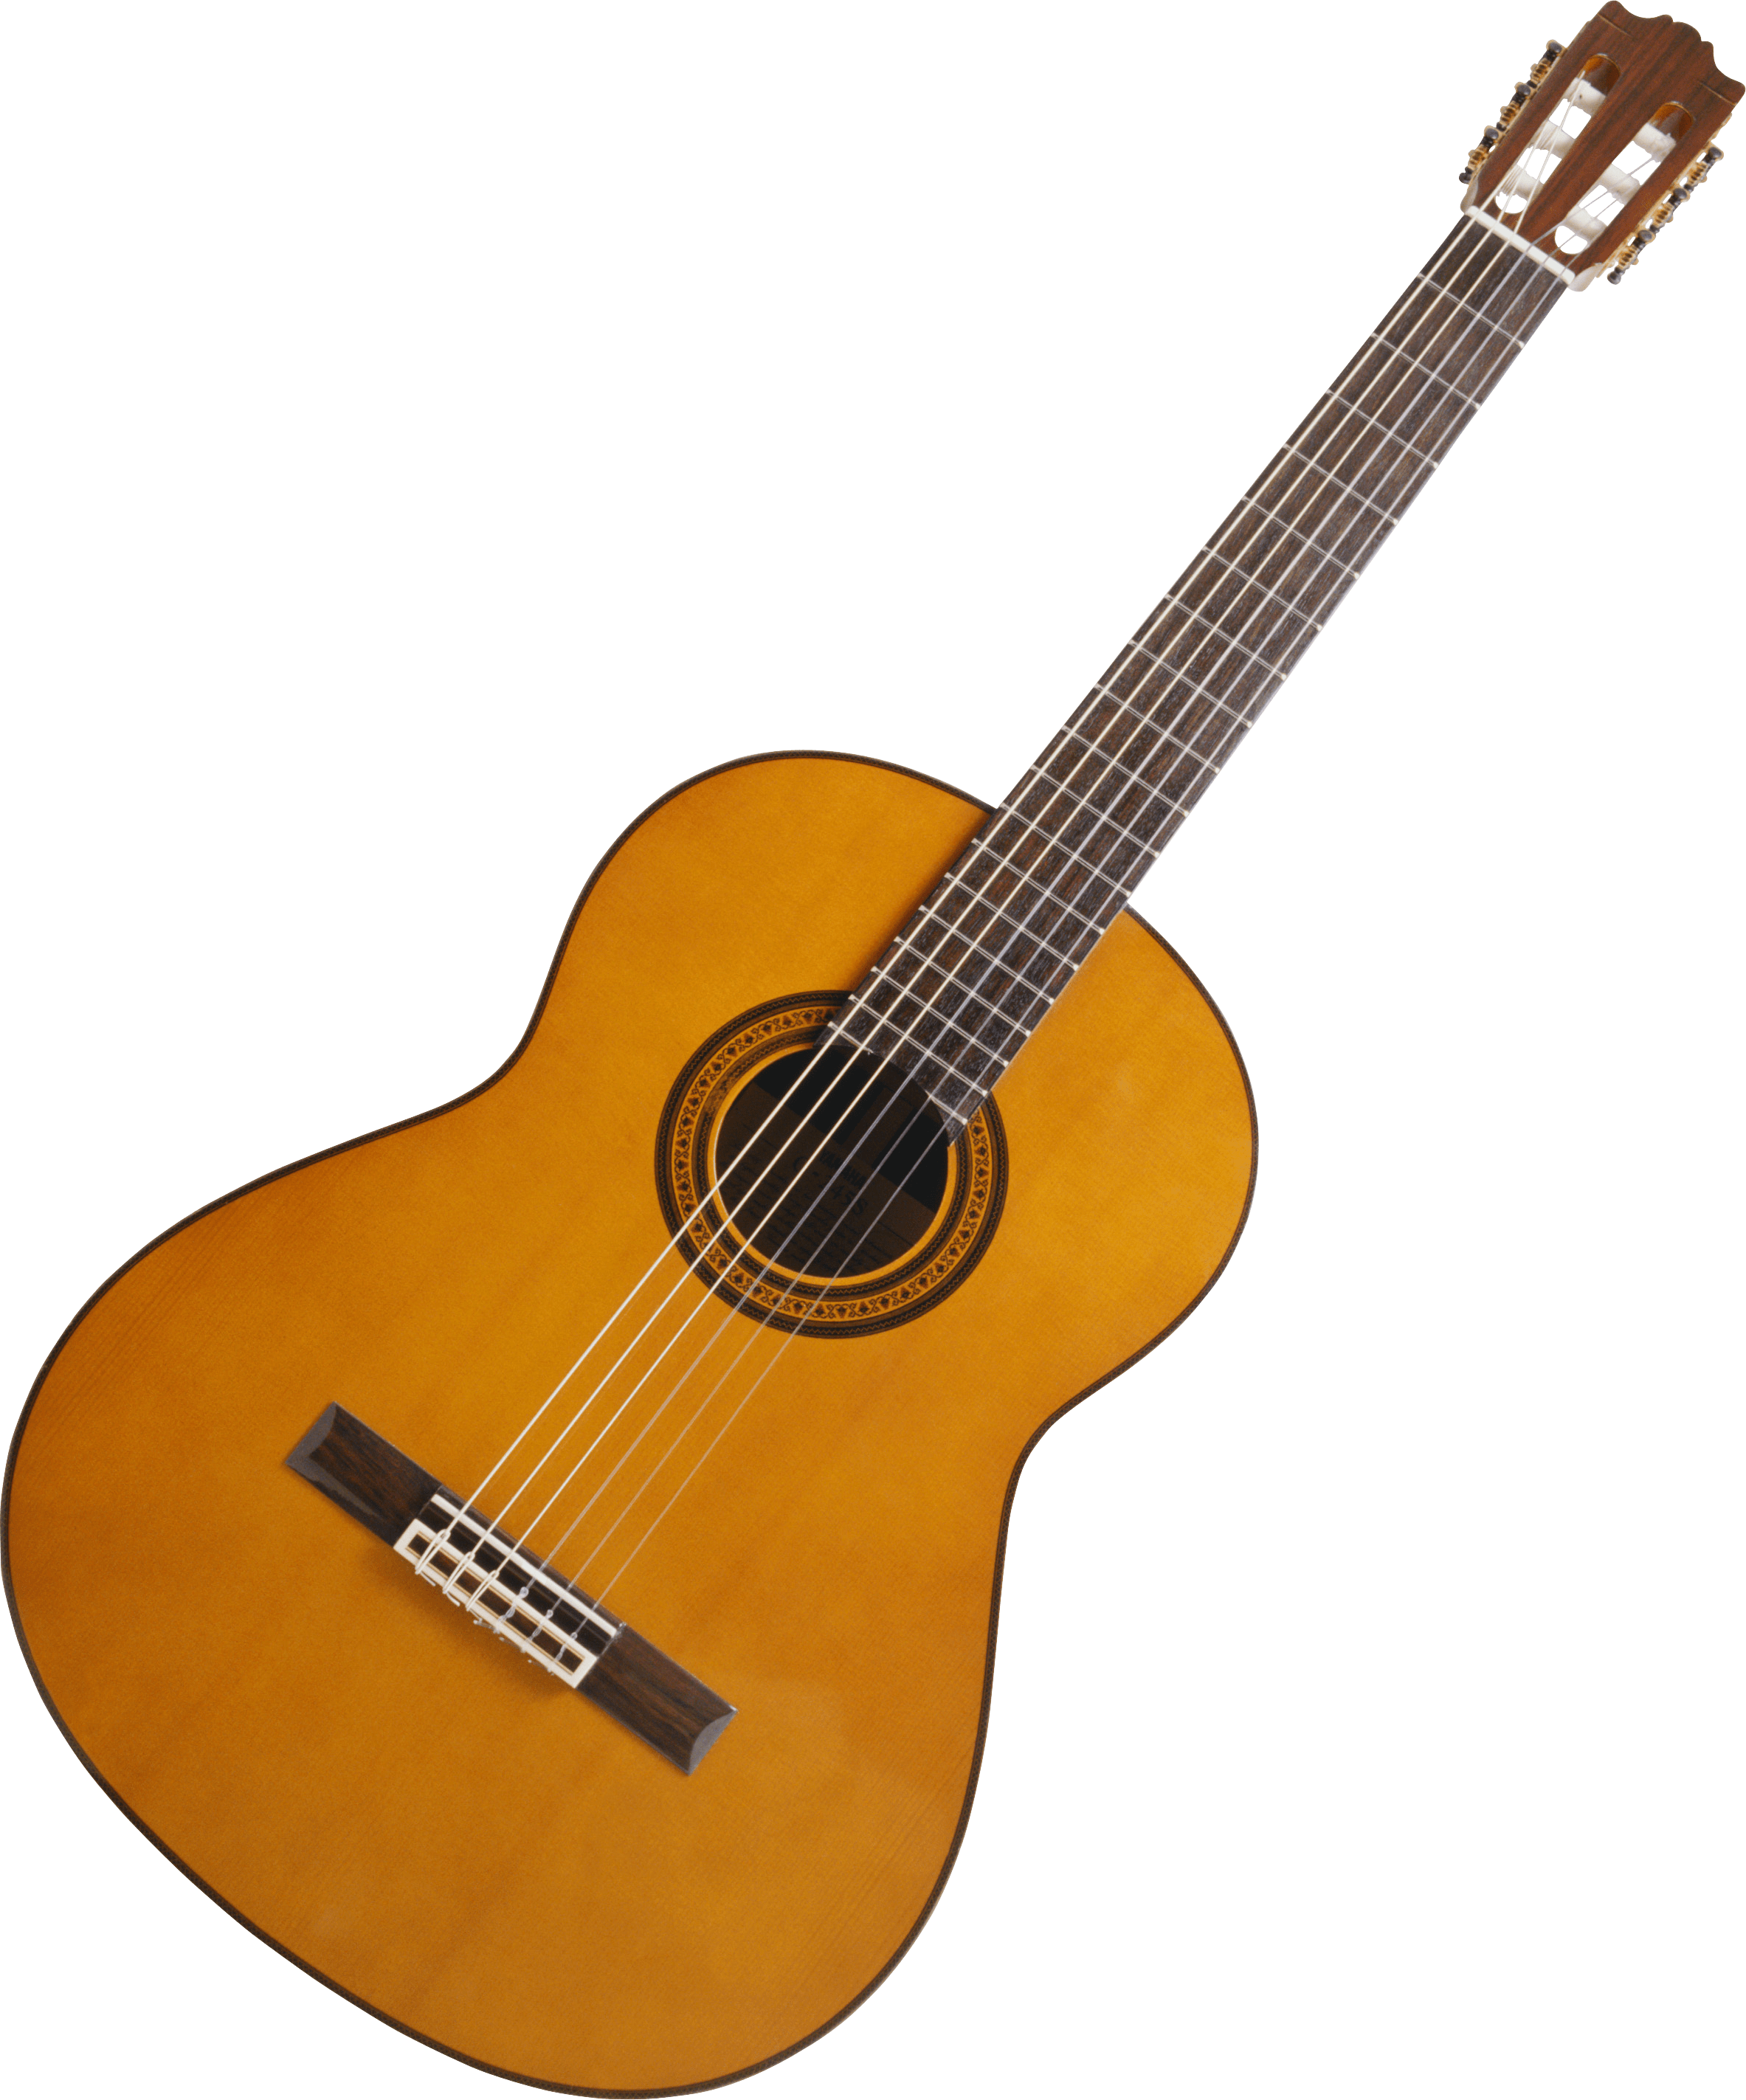 Acoustic Guitar Png : acoustic, guitar, Guitar, Images, Picture, Download